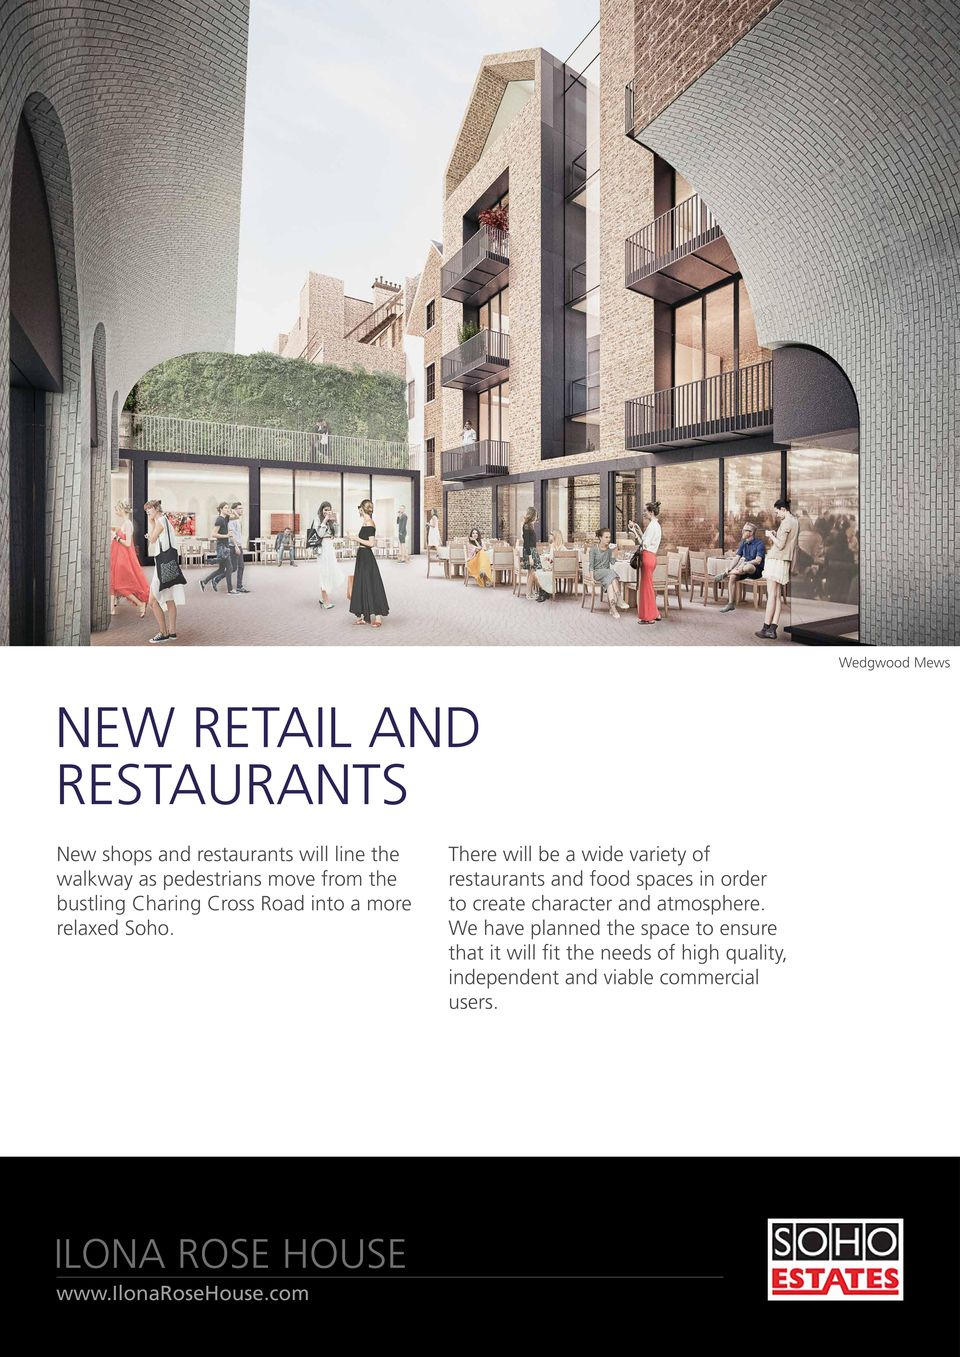 There will be a wide variety of restaurants and food spaces in order to create character and